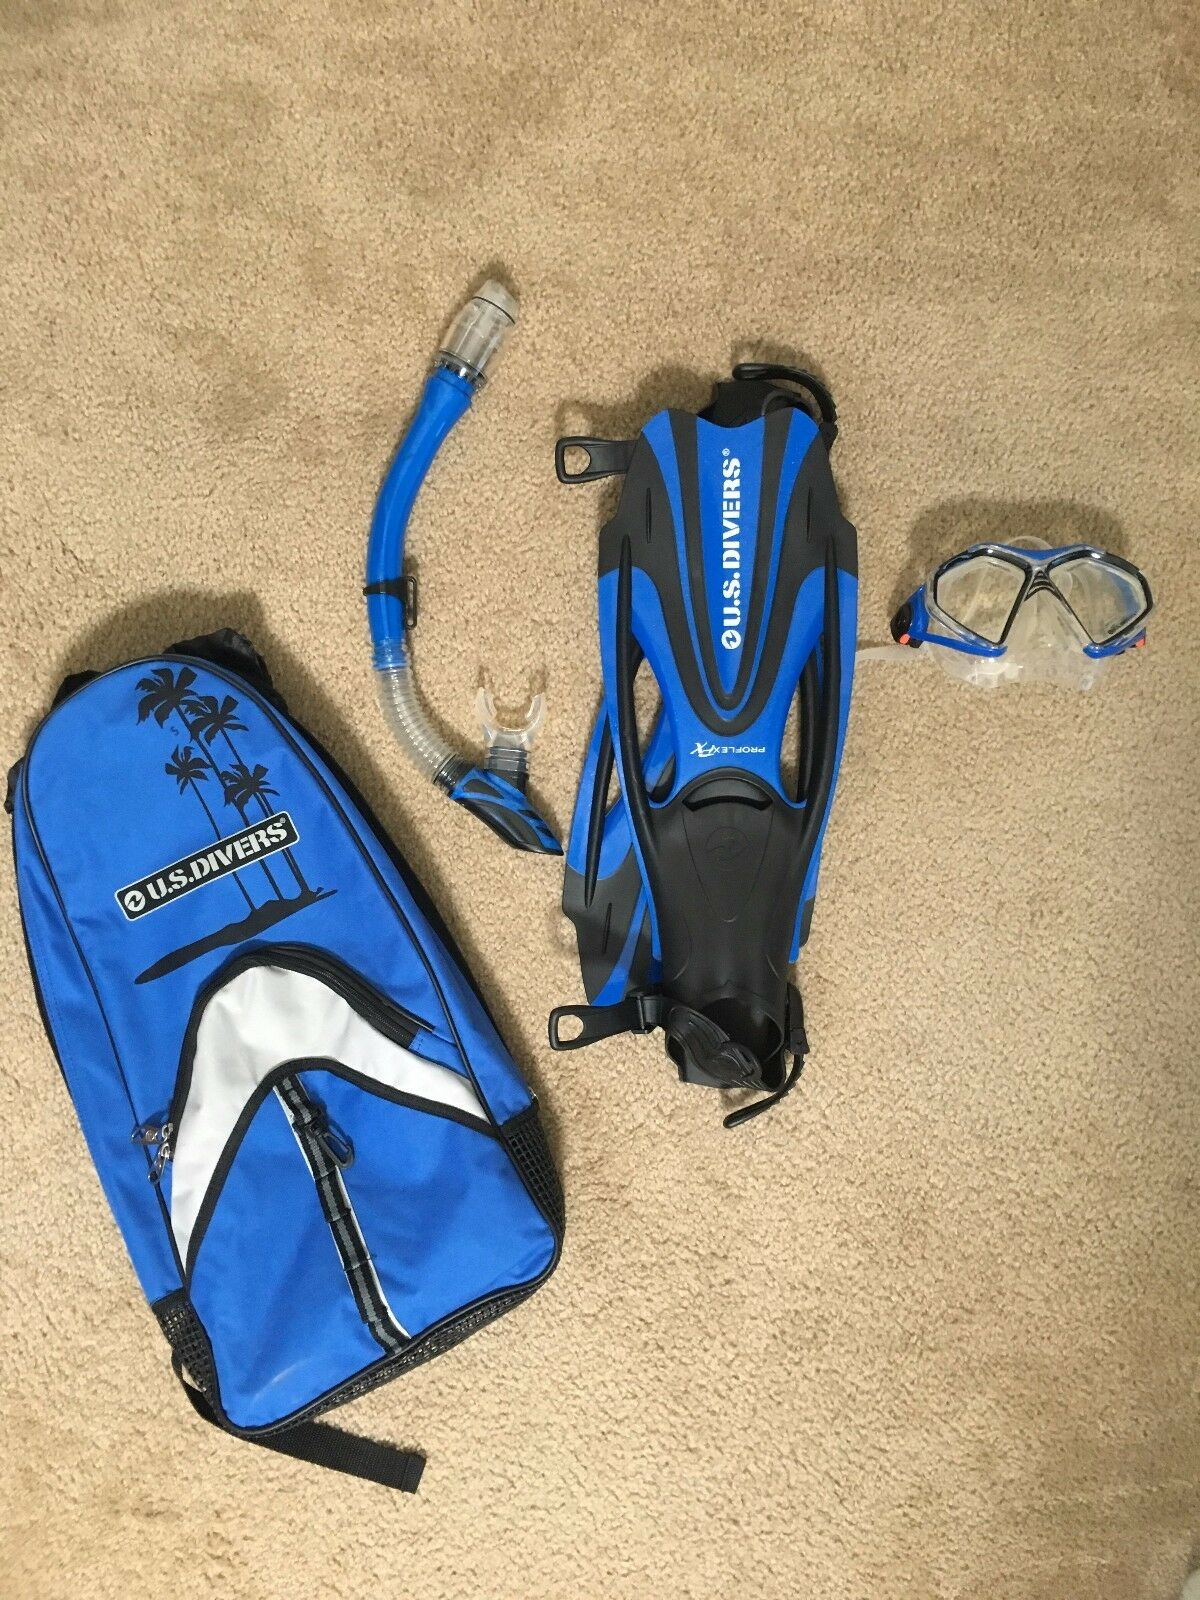 Special   New USDivers Adult Snorkeling Kit + Life Vest - 4 available for